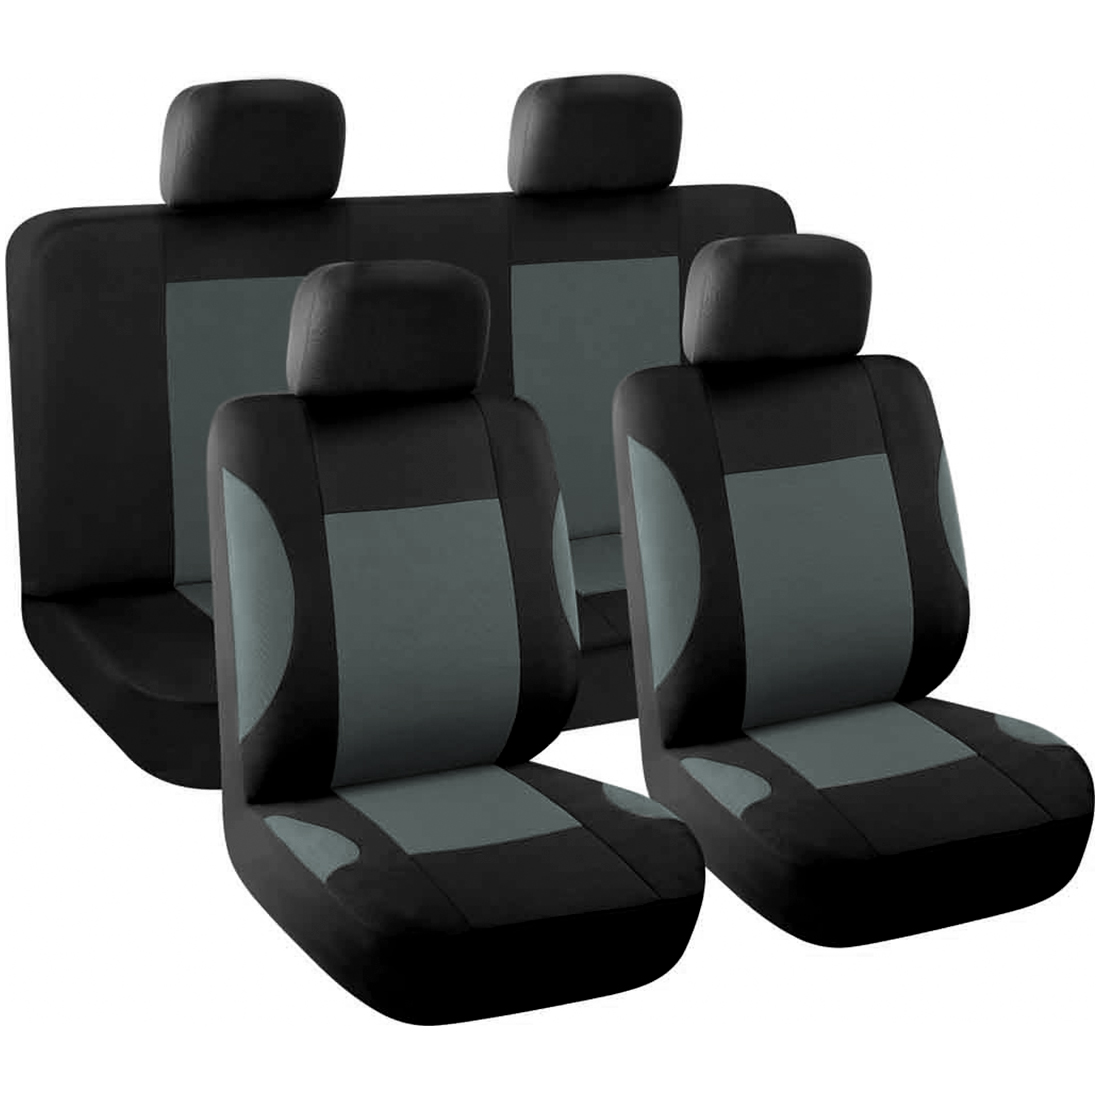 8-piece Full Set Car Seat Covers Auto Interior Accessories